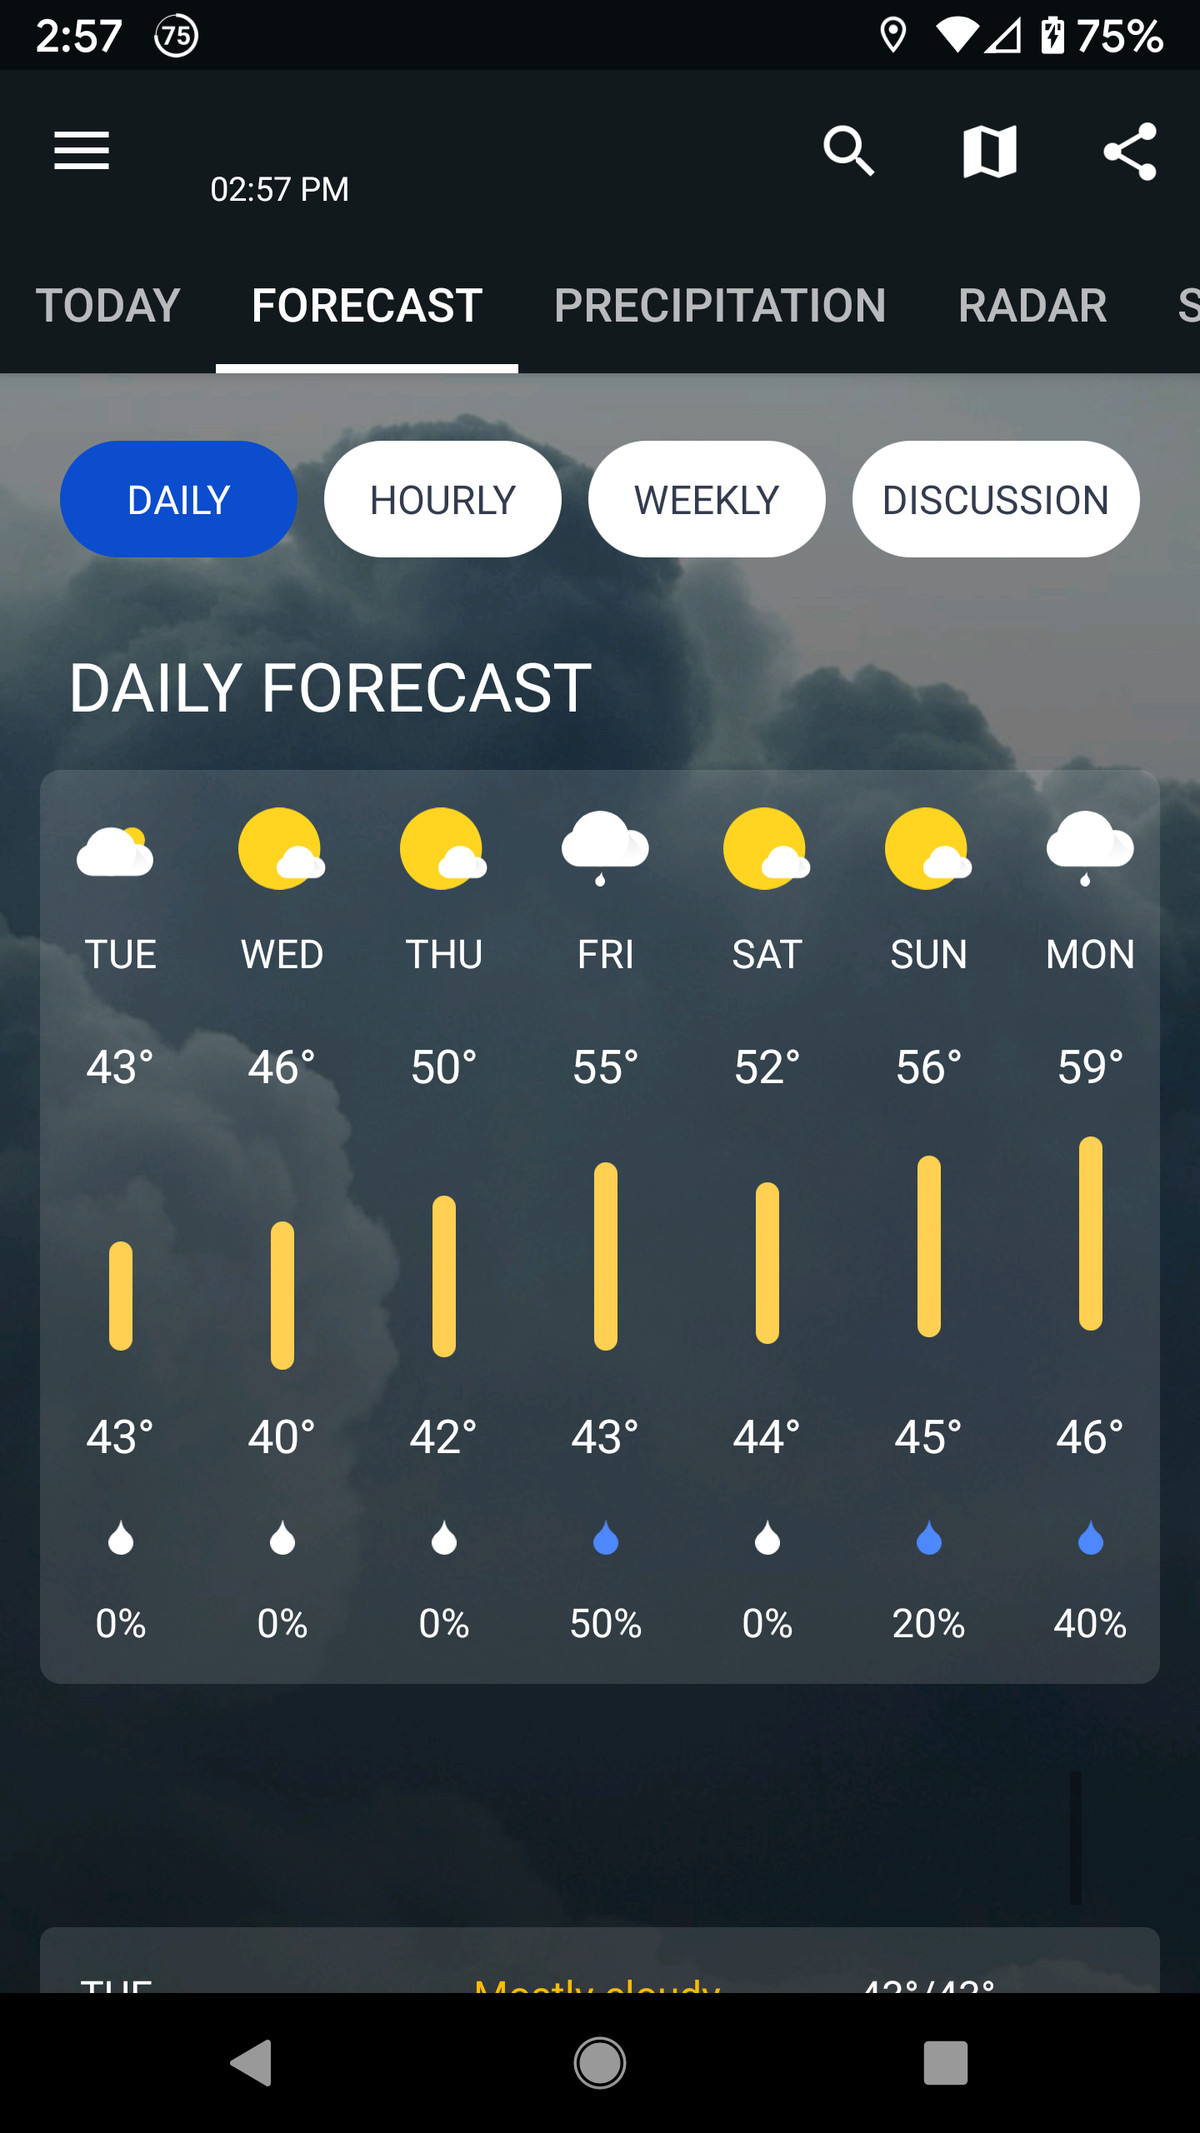 1Weather gets its info using the Weather2020 platform.